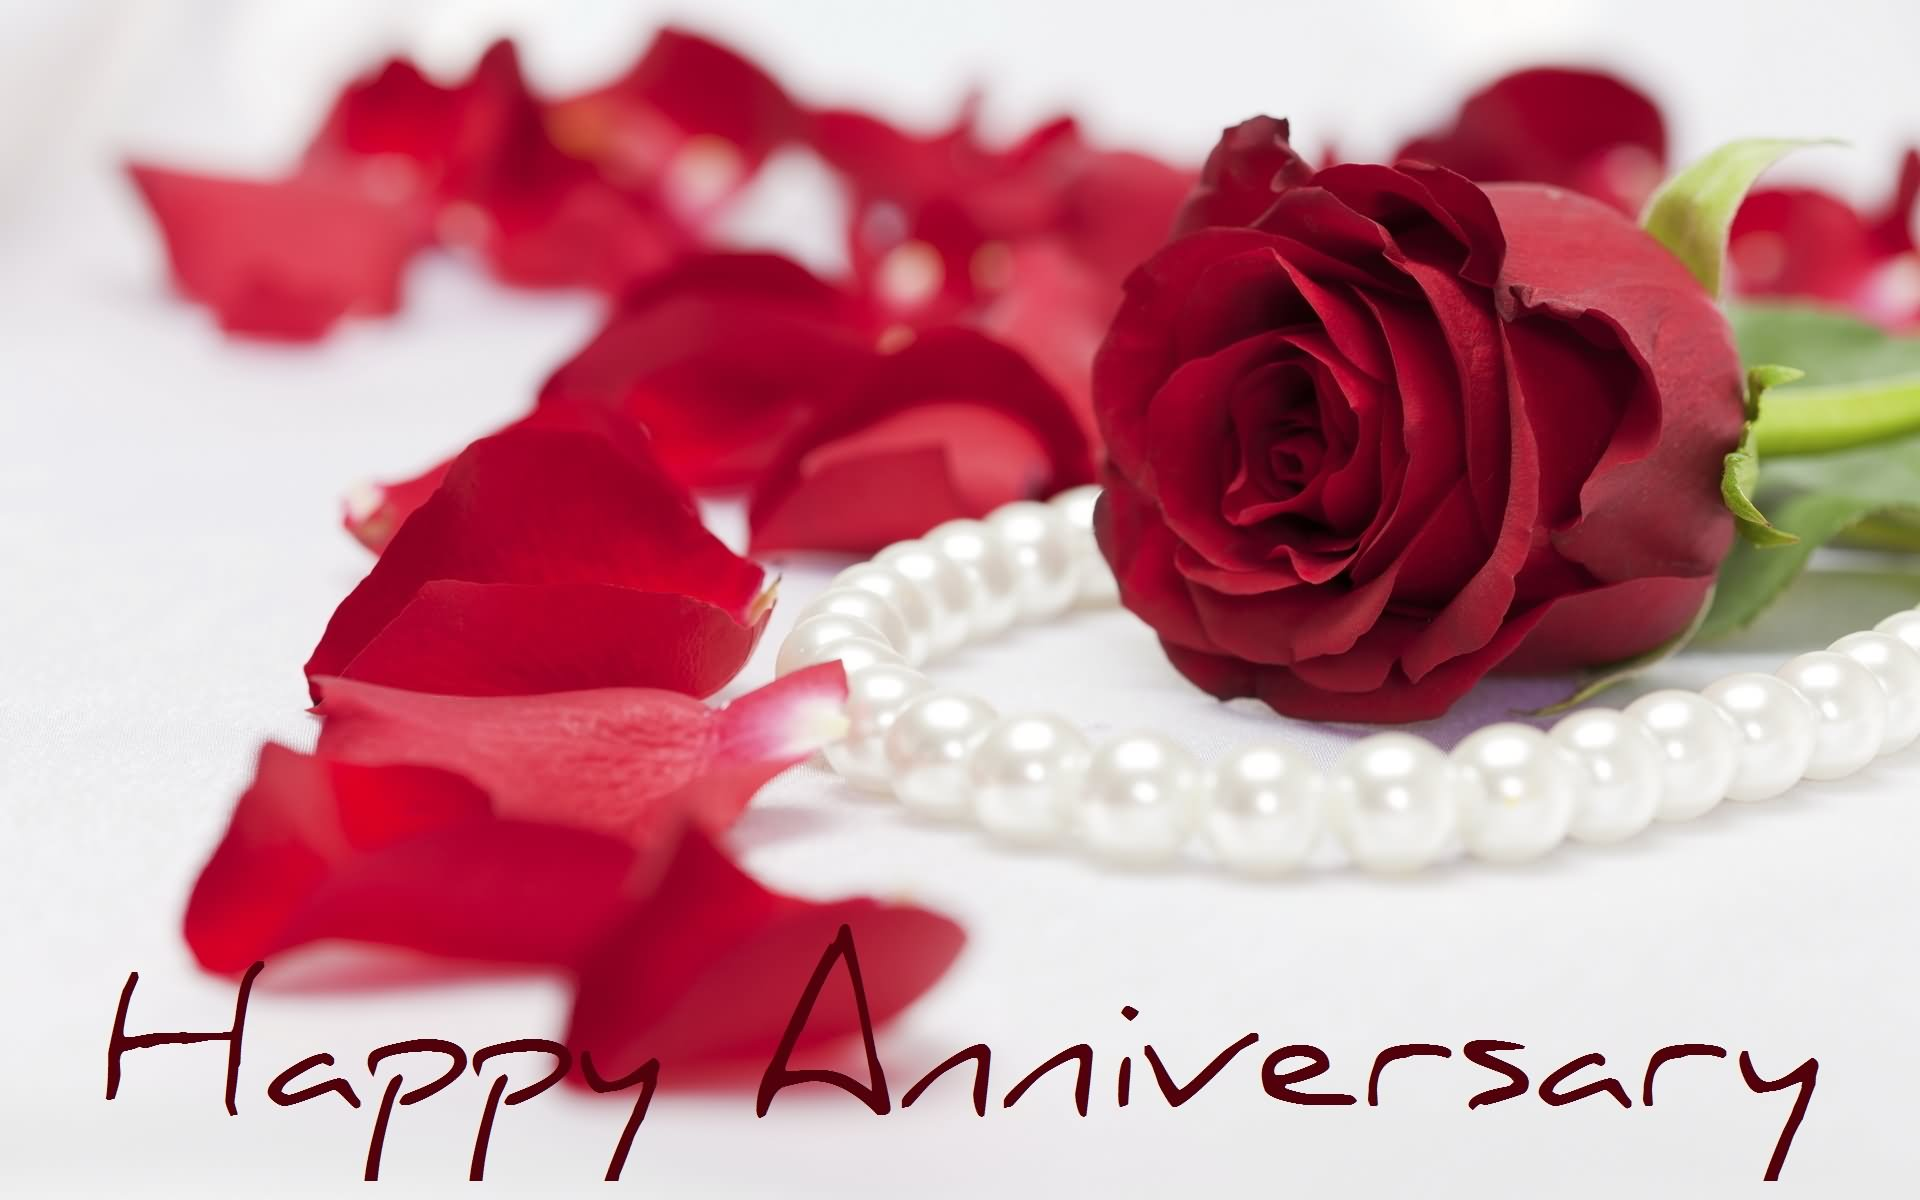 Happy anniversary red rose picture